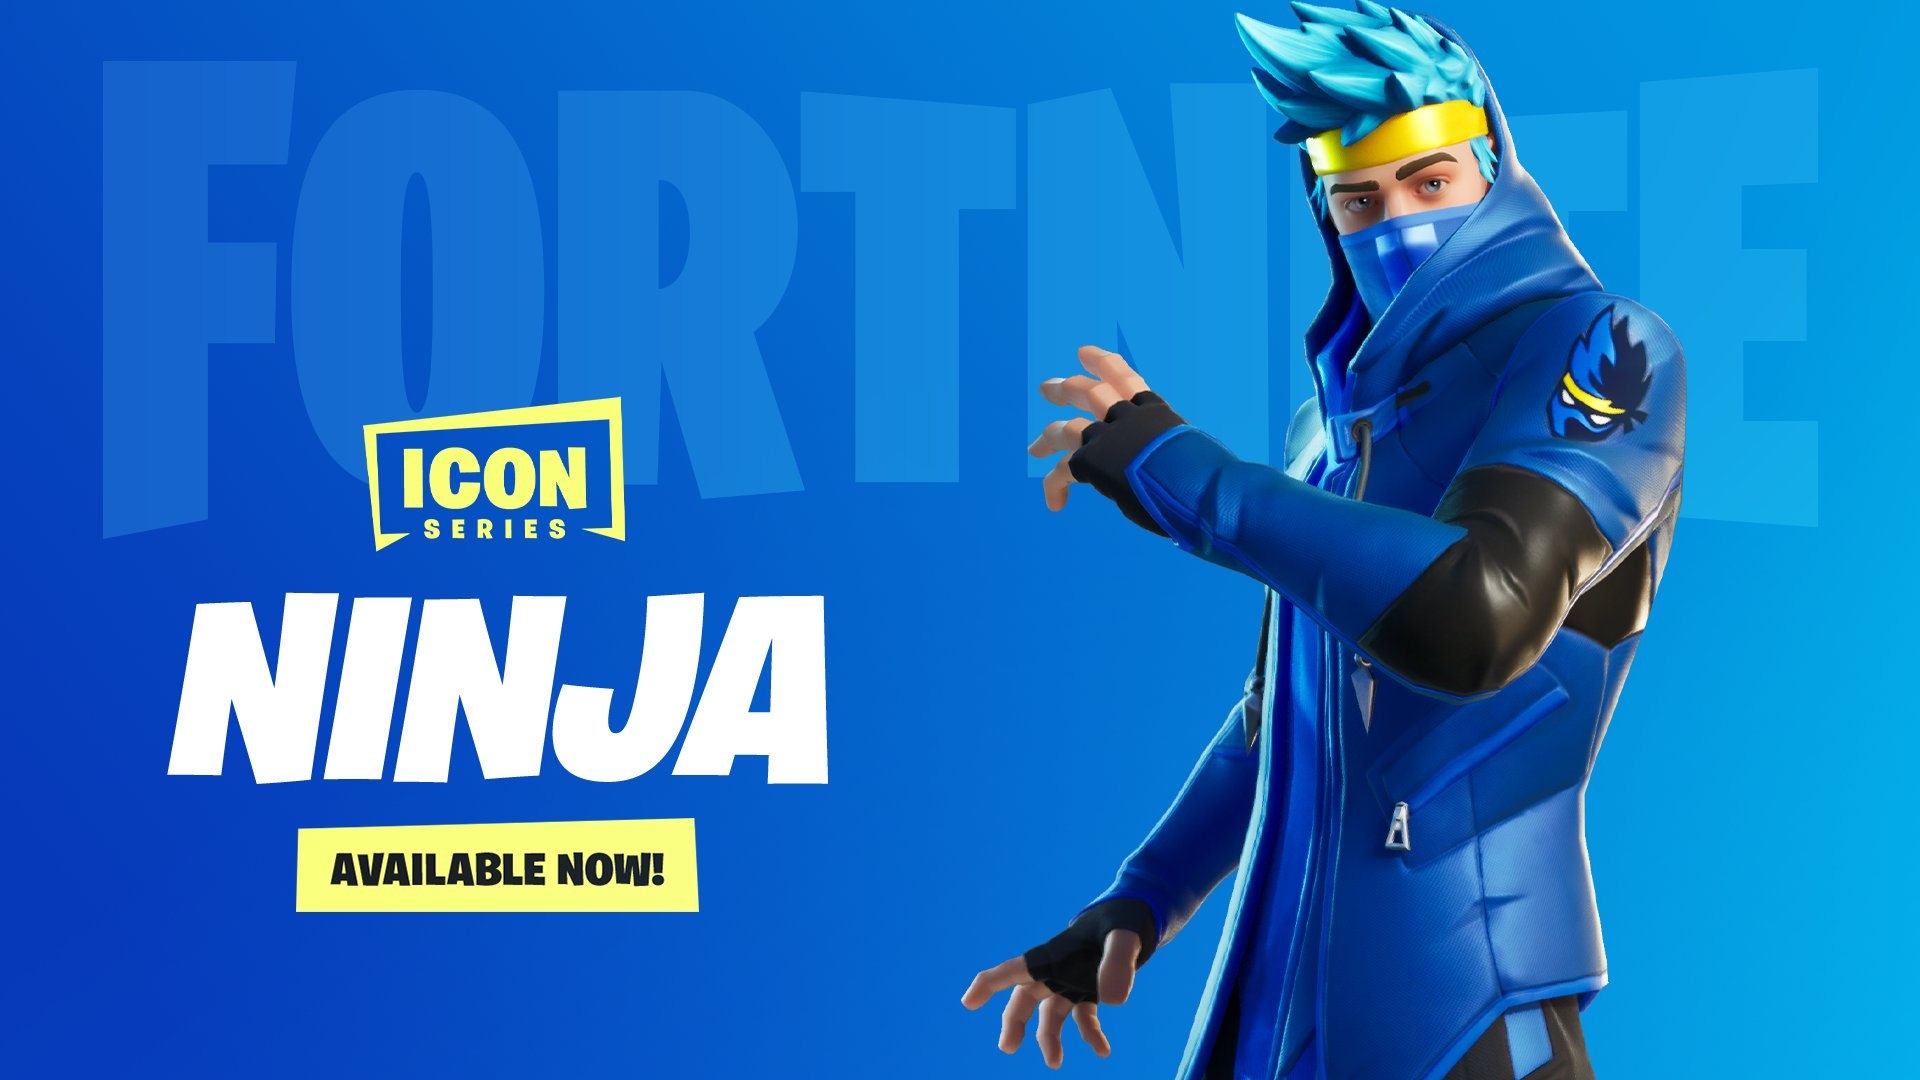 Skin in the game: Ninja is the first player to get his own Fortnite skin